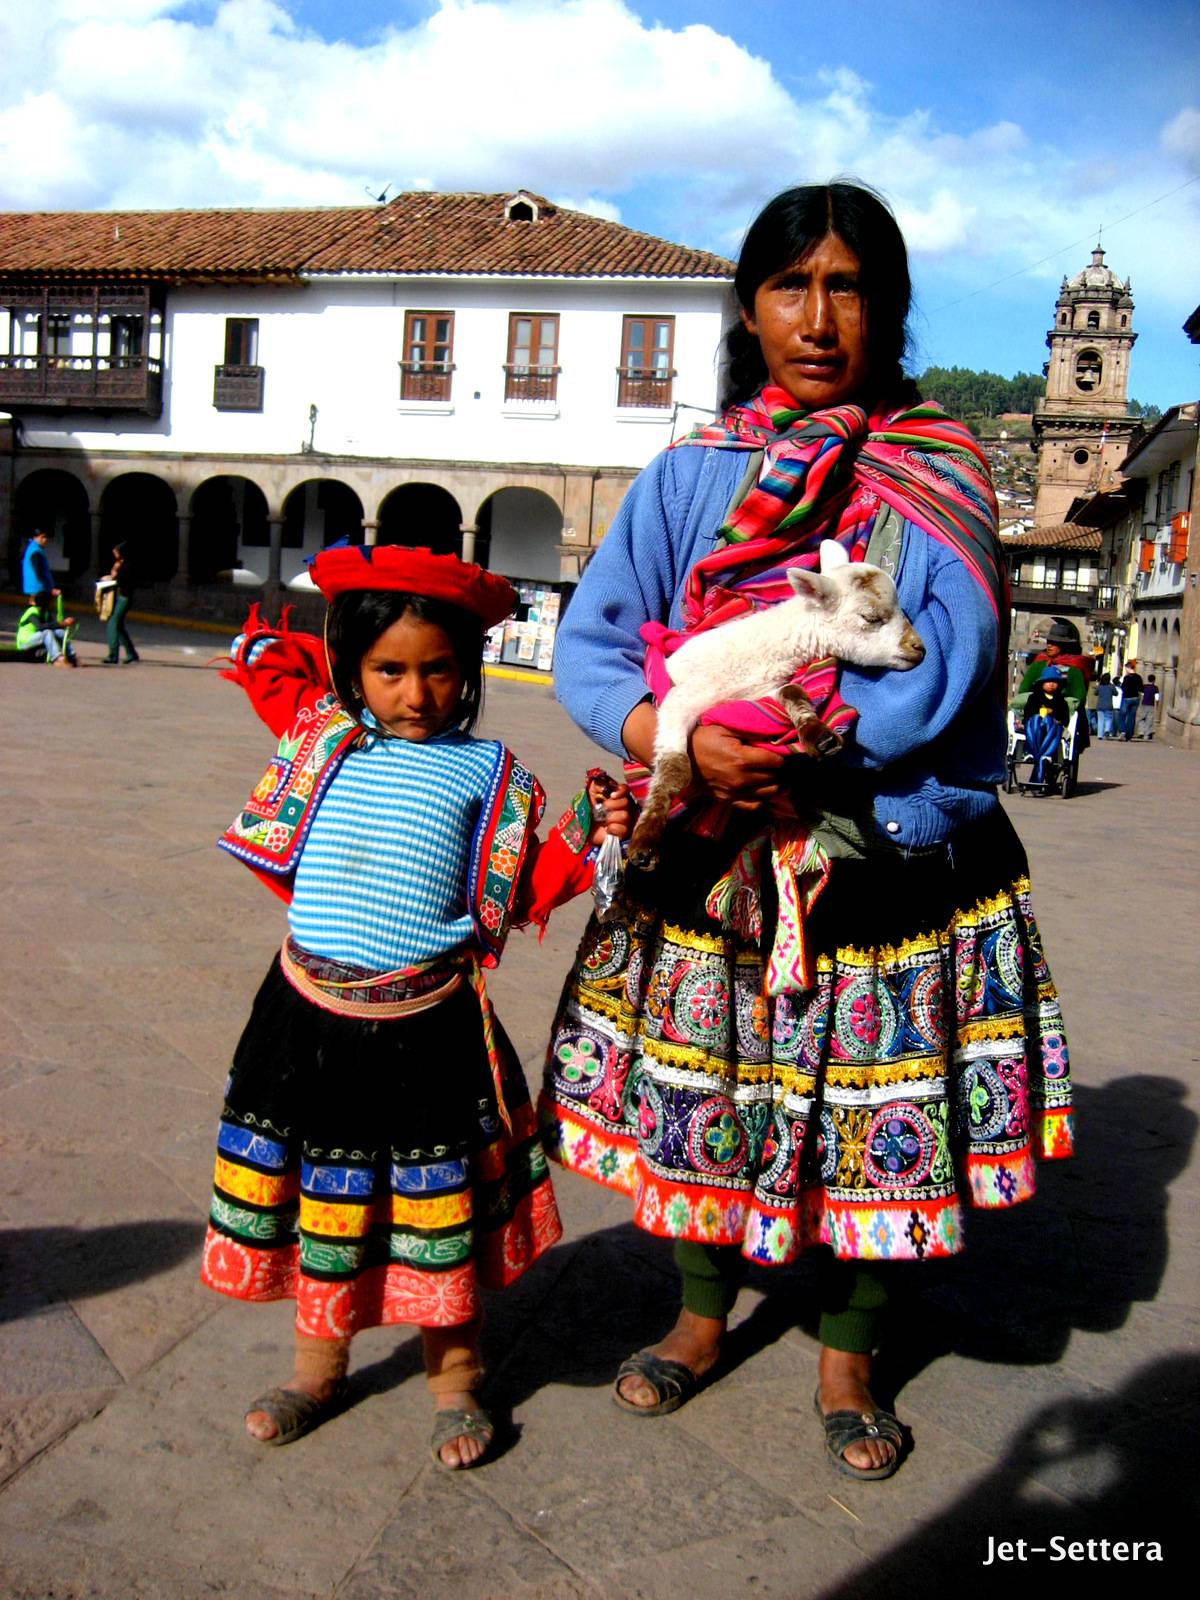 Local Peruvians in Cuzco - Things to Do in Machu Picchu and Beyond